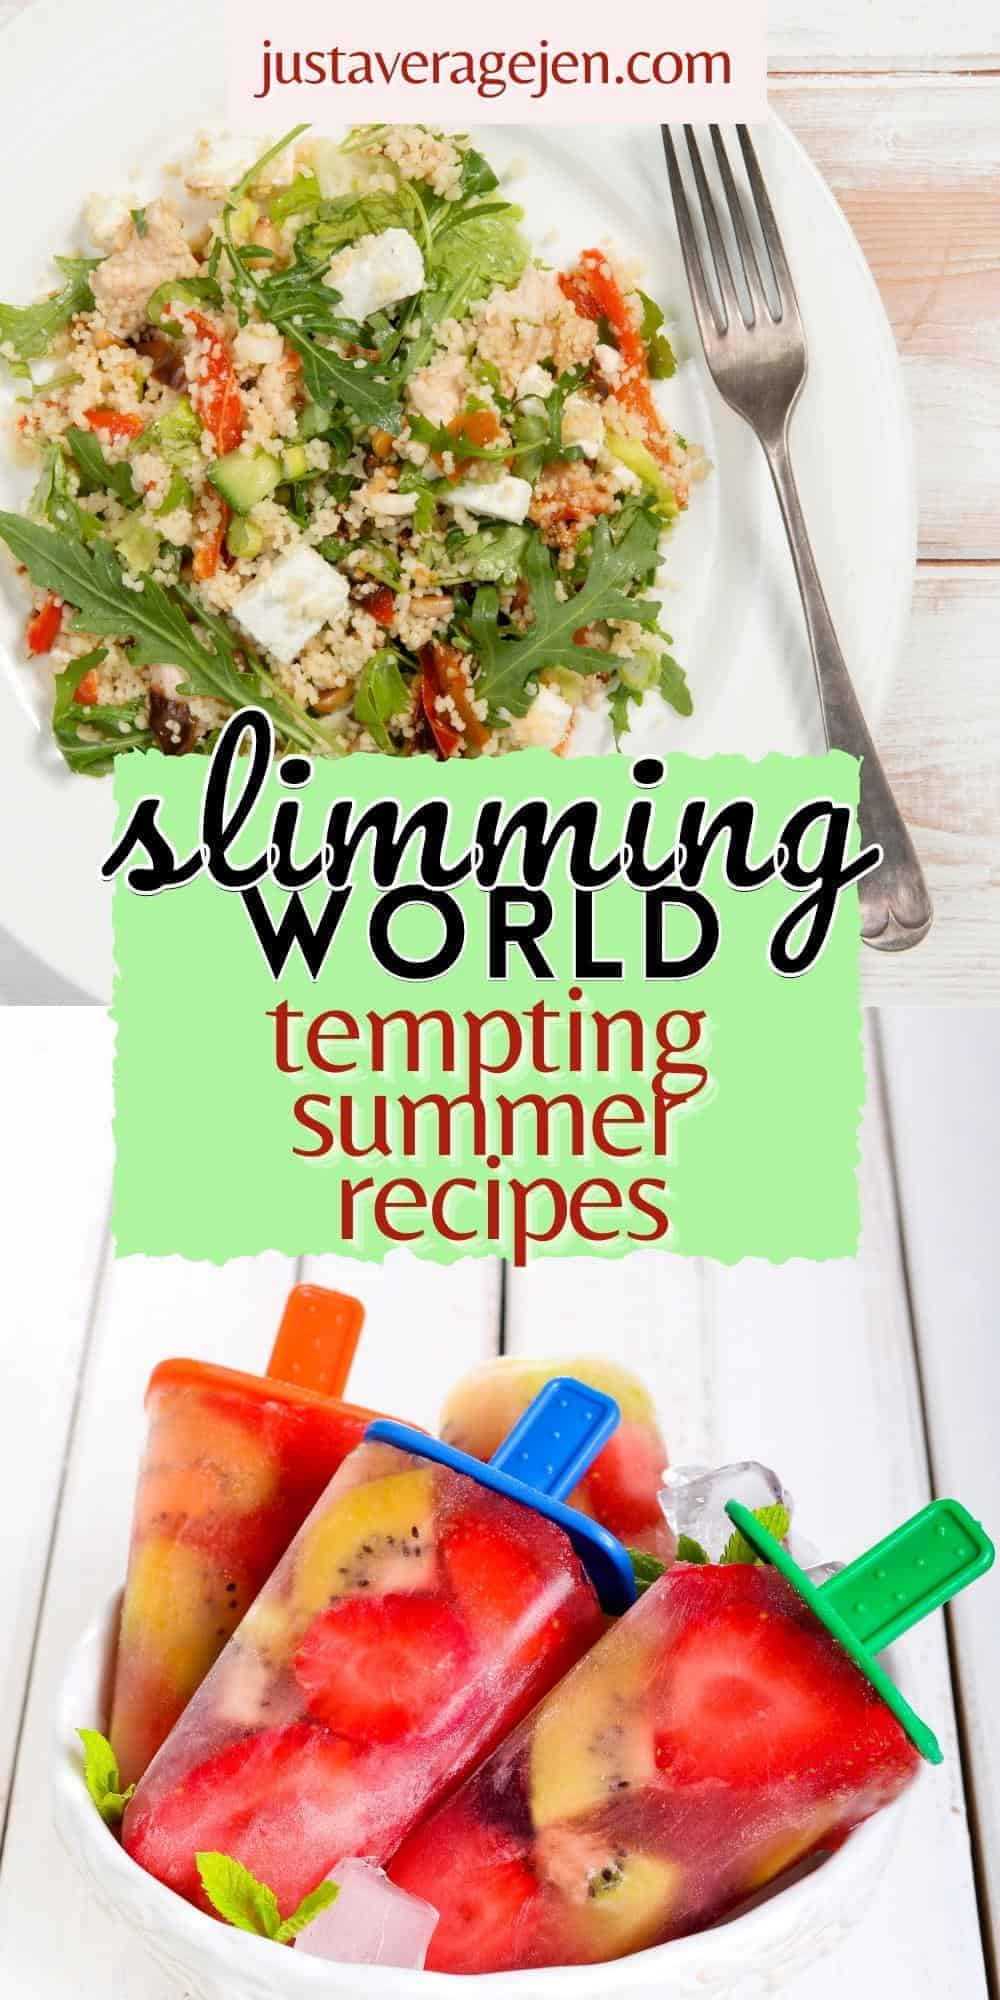 A plate of food on a table, with Summer and Slimming World